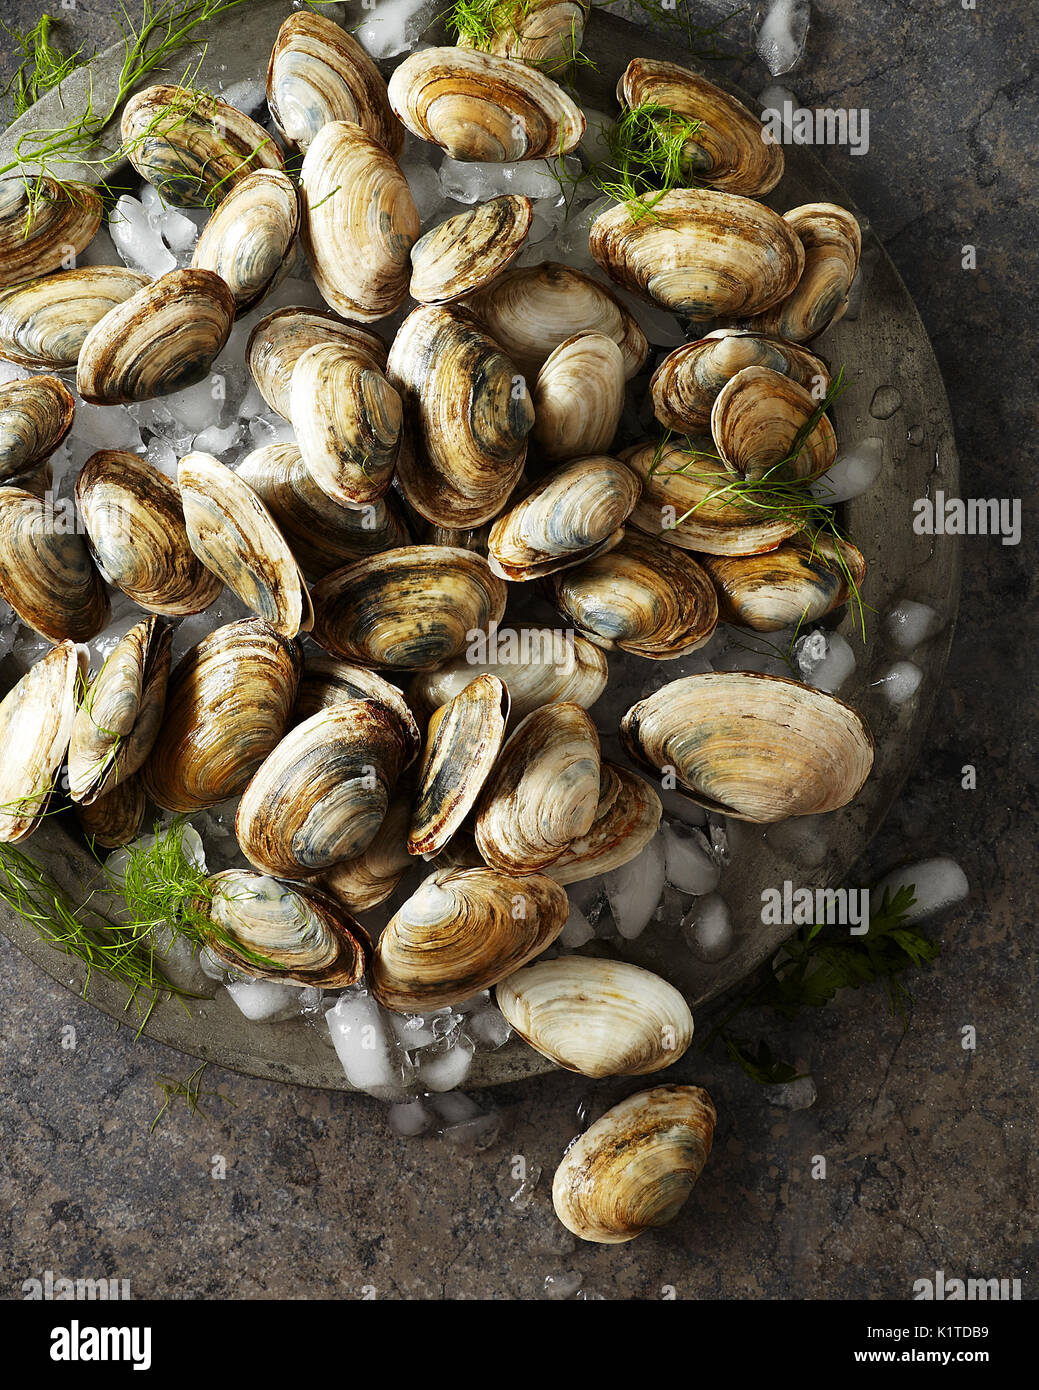 Raw whole clams on crushed ice sitting on an antique silver platter - Stock Image